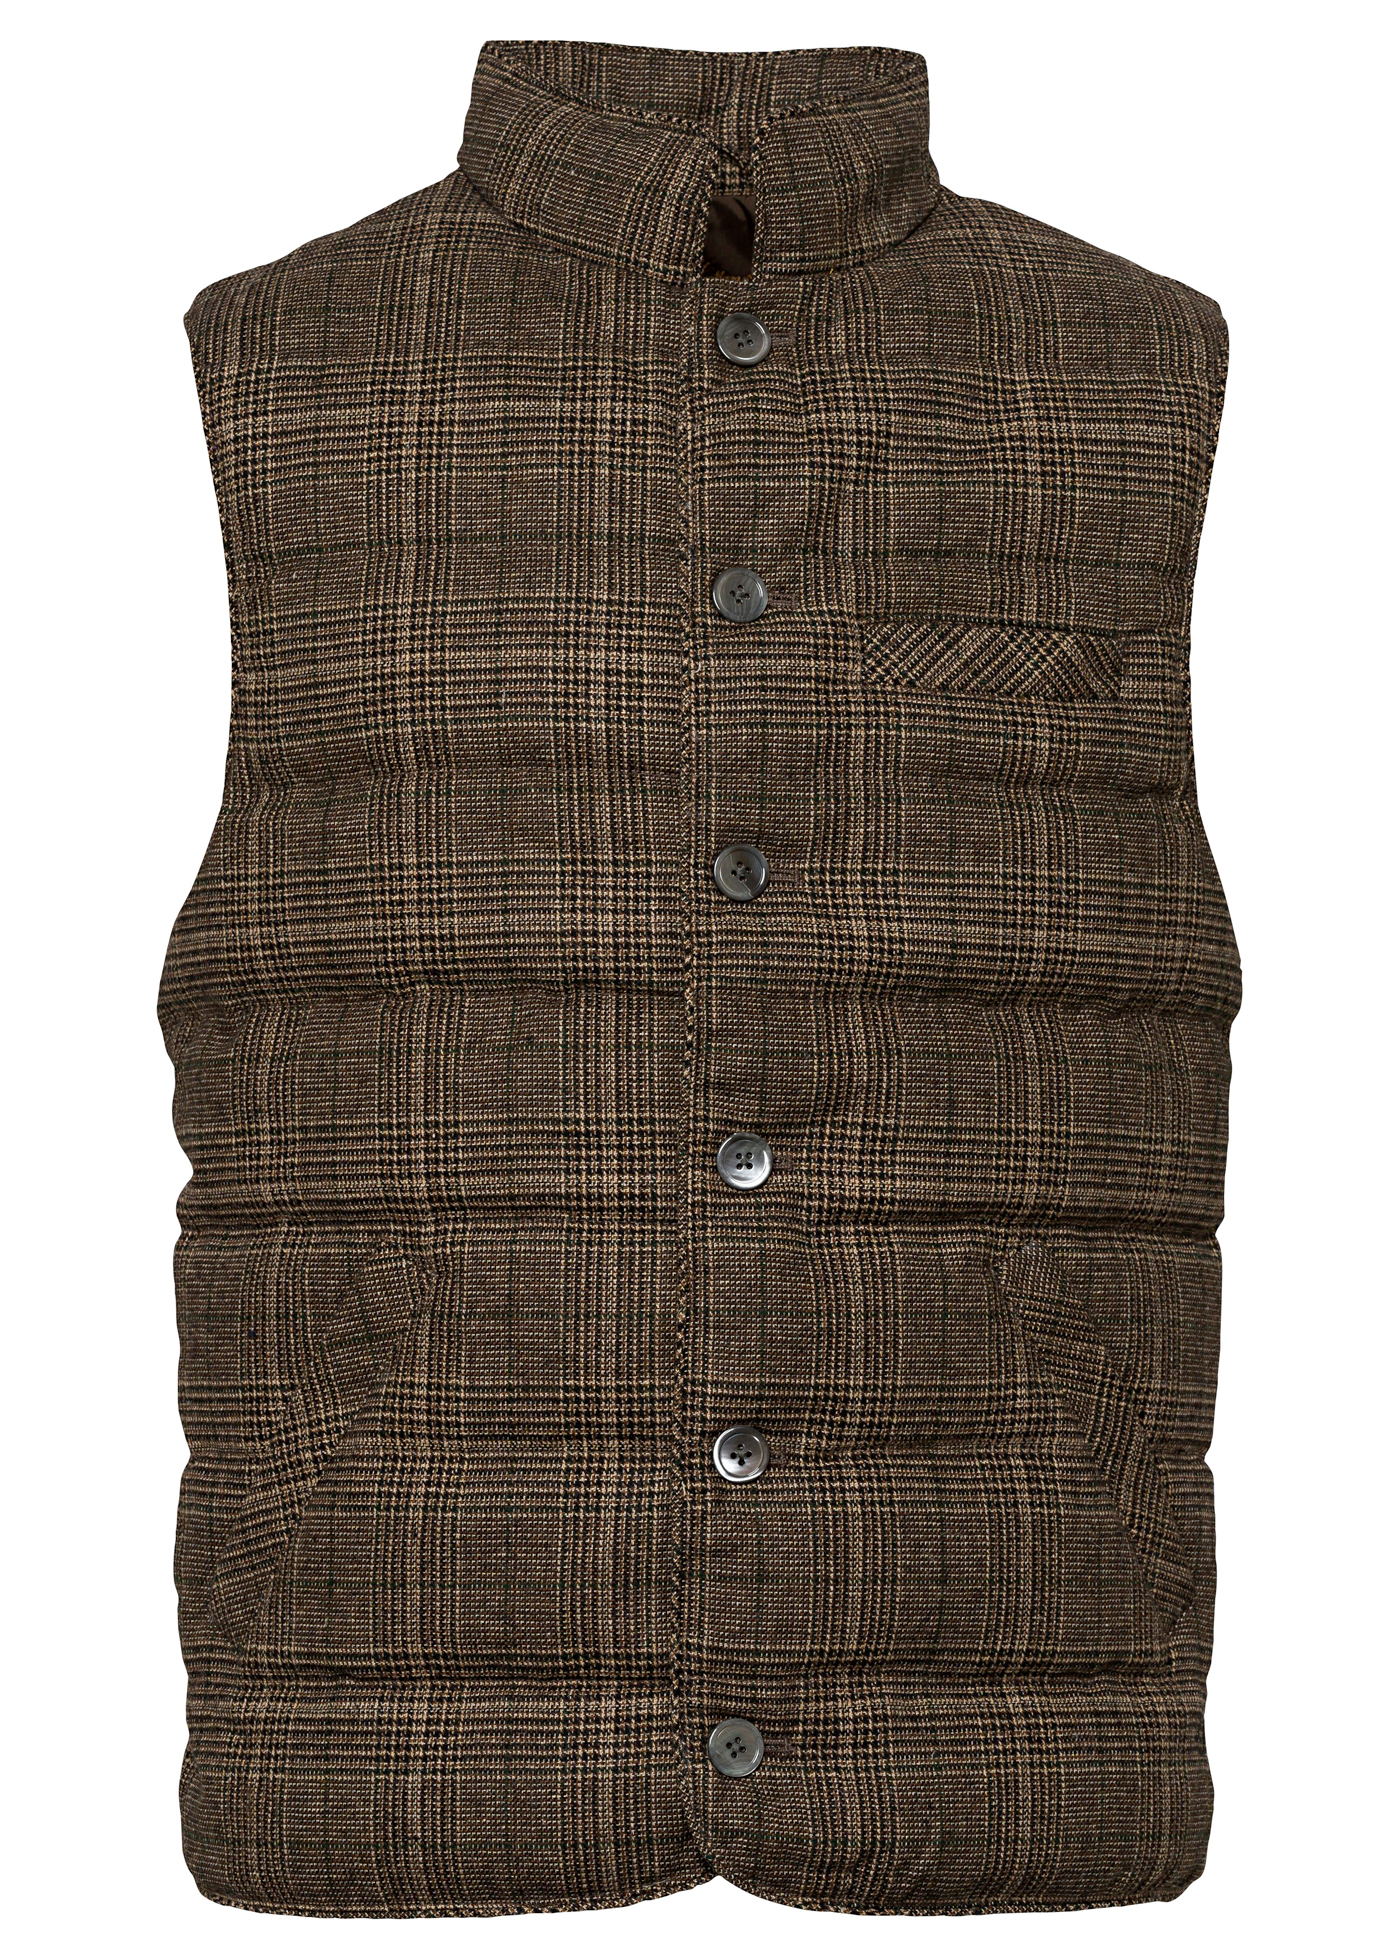 Quilt Check Wo Vest image number 0